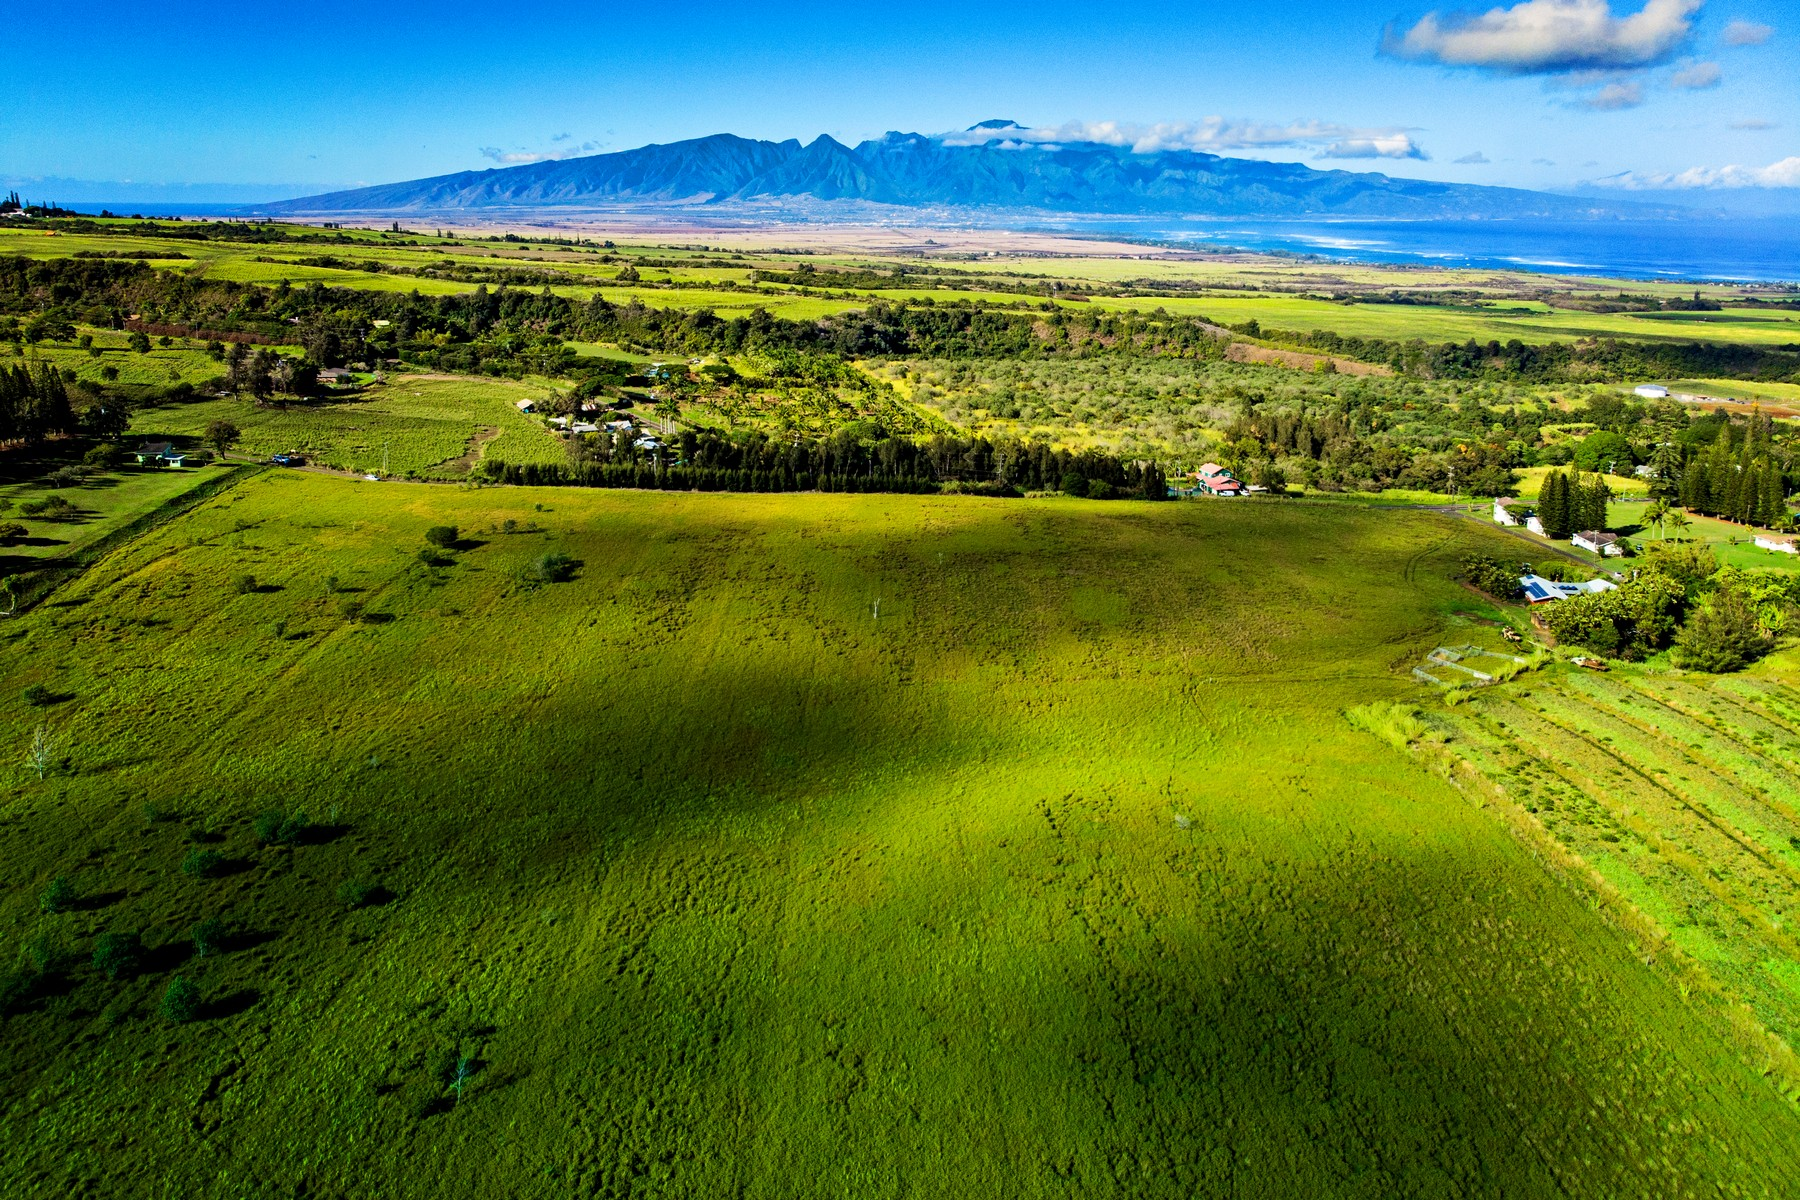 农场 / 牧场 / 种植园 为 销售 在 30 Pristine Acres on Maui's North Shore 0 Kokomo Rd Haiku, 夏威夷 96708 美国